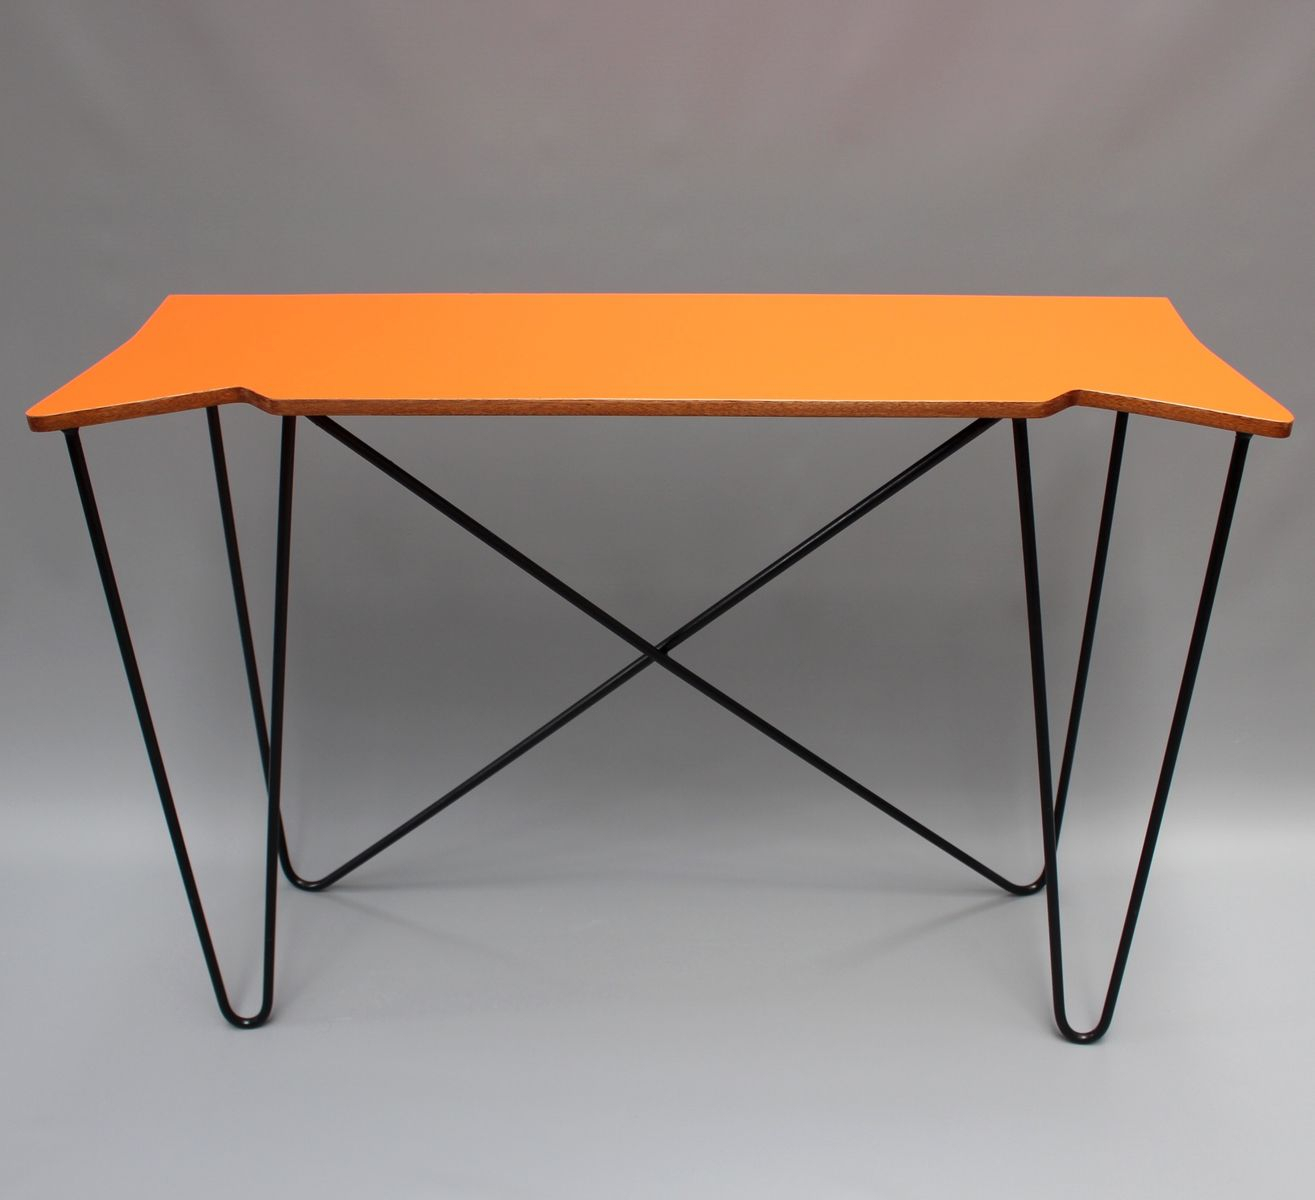 Vintage Orange Console Table 1980S For Sale At Pamono Bone Inlay Inside Orange Inlay Console Tables (View 30 of 30)